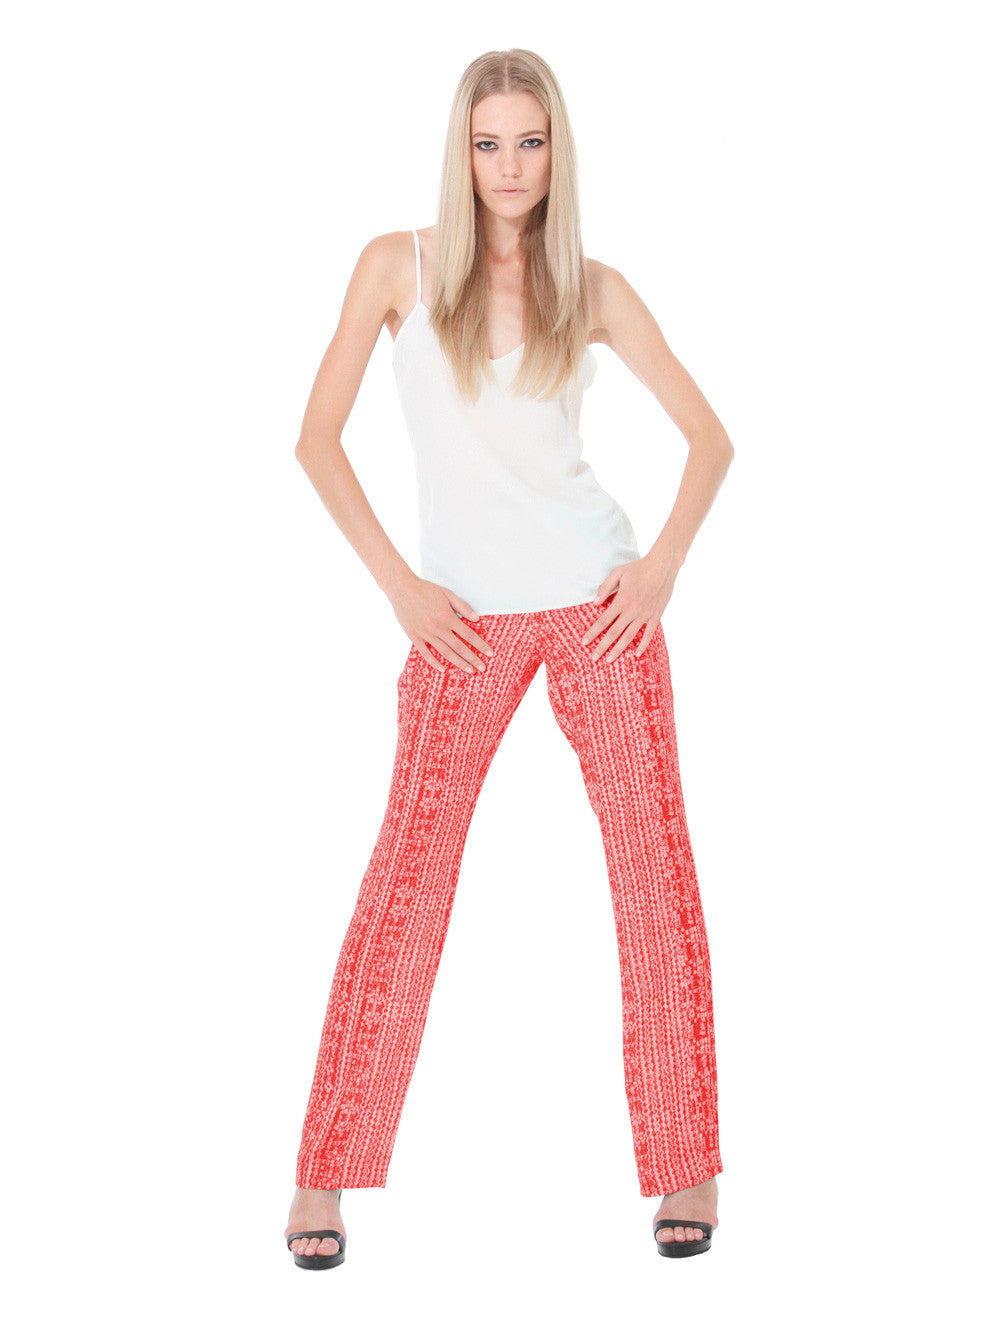 DRIFT AWAY PANT - Little Joe Woman by Gail Elliott E-Boutique  - 2